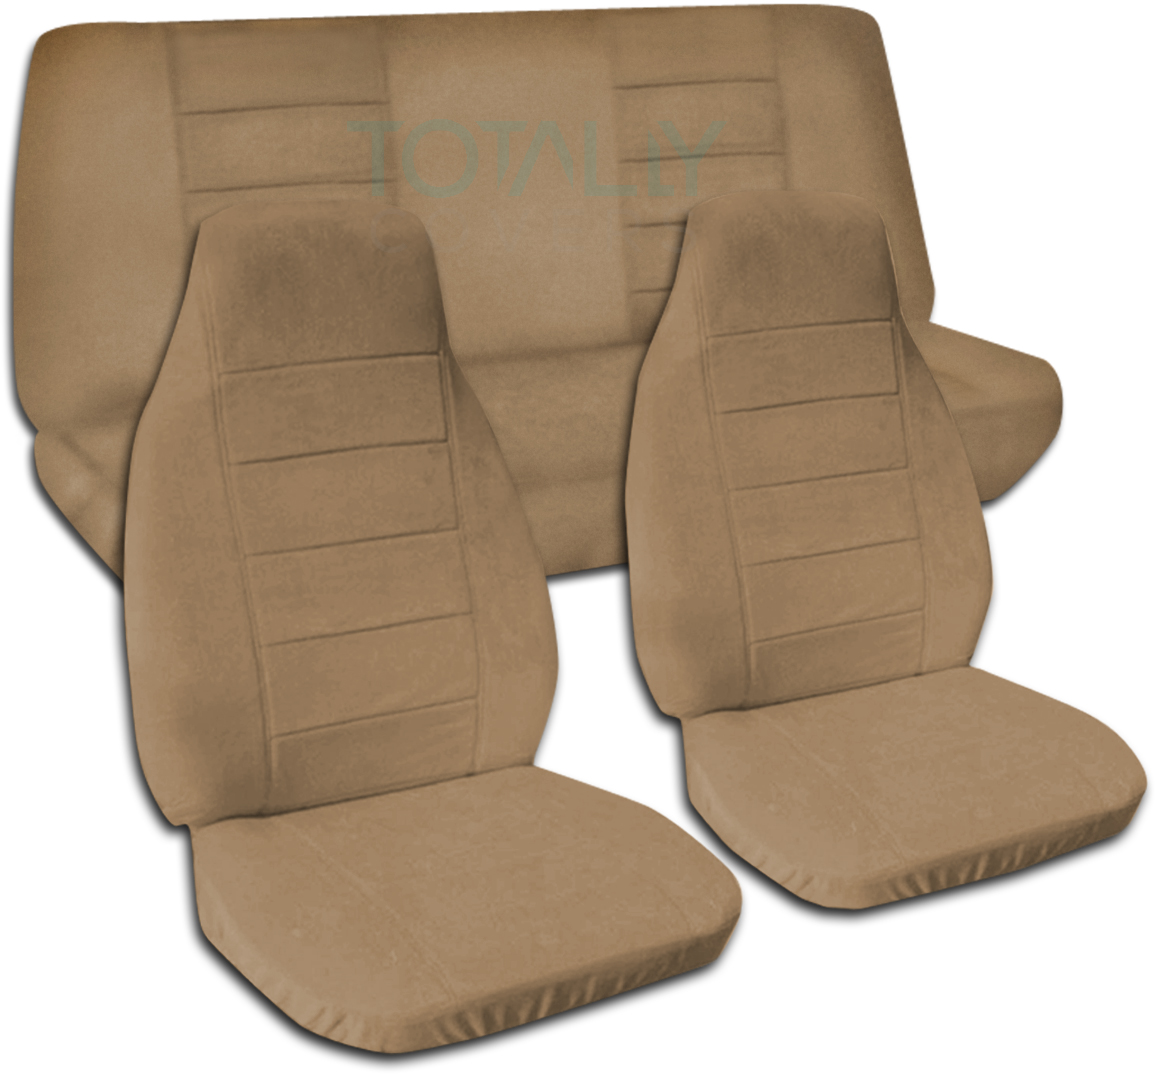 Yellow Seat Covers For Cars